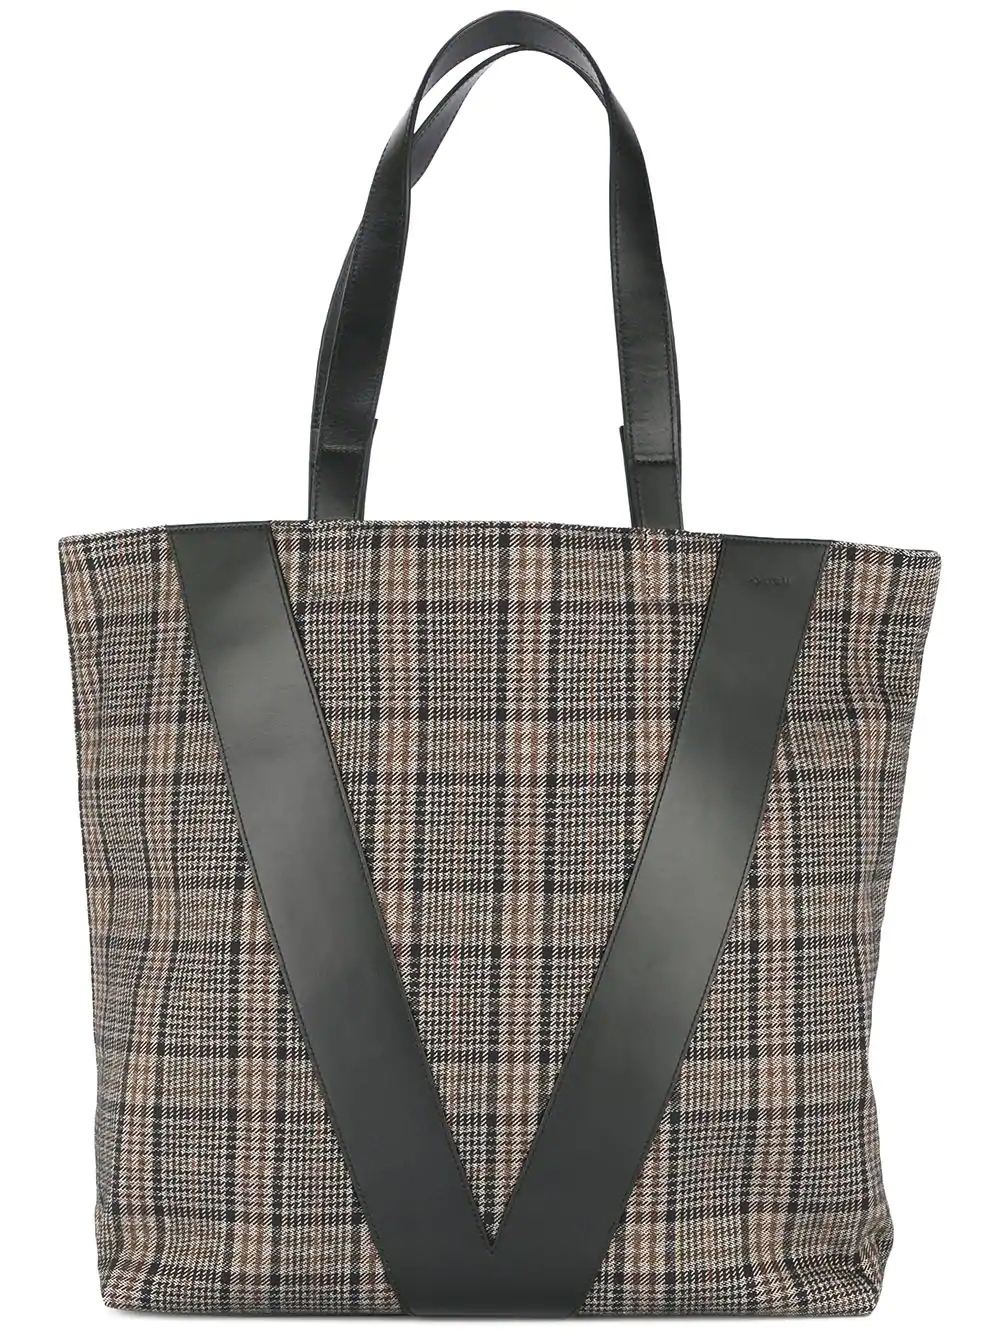 Ports V Plaid Shopper Tote - Brown In 002-Multicolor